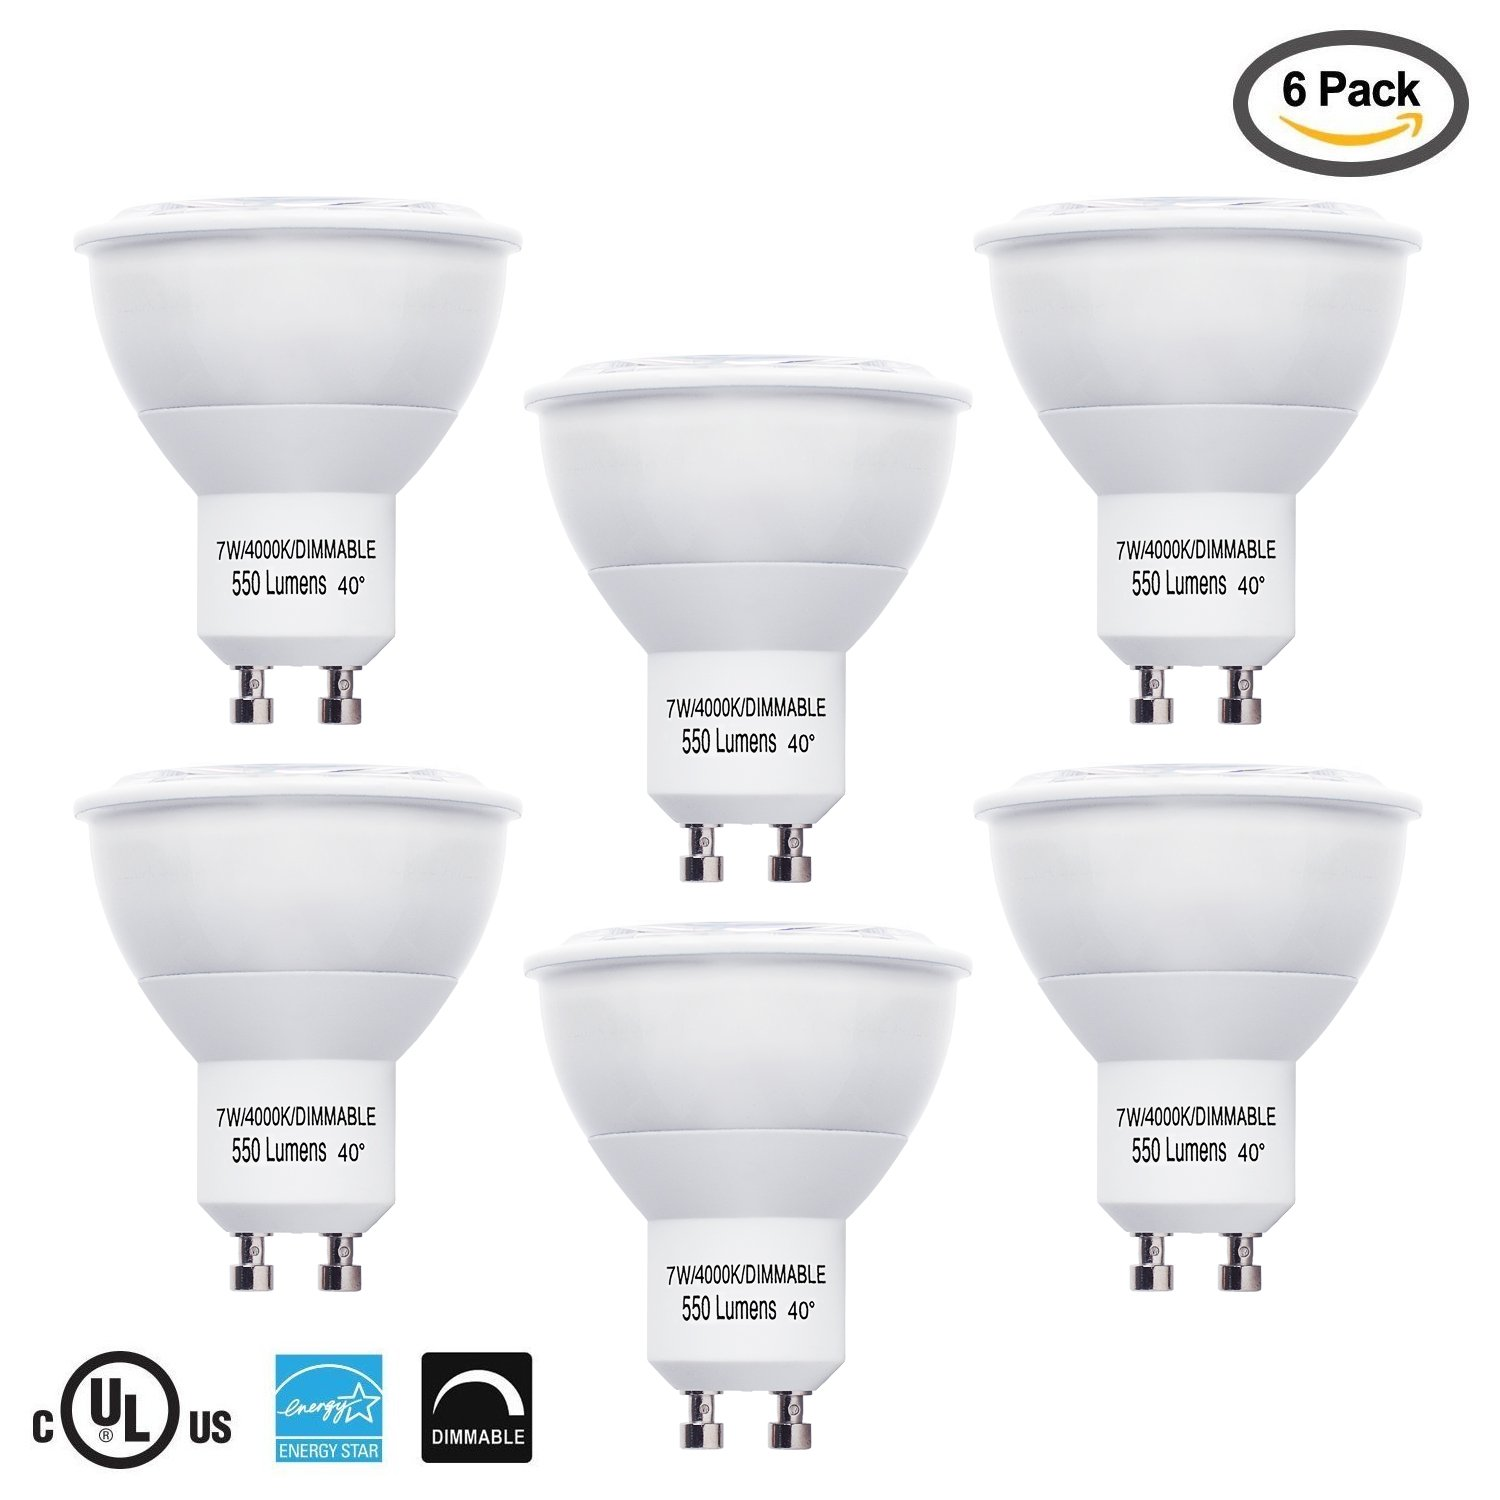 LB10562 LED GU10 MR16 40° 50W Equivalent, Dimmable 7 Watt, 4000K Daylight Light Bulbs, 550 Lumens, UL-Listed, Energy Star Certified, (6-Pack)